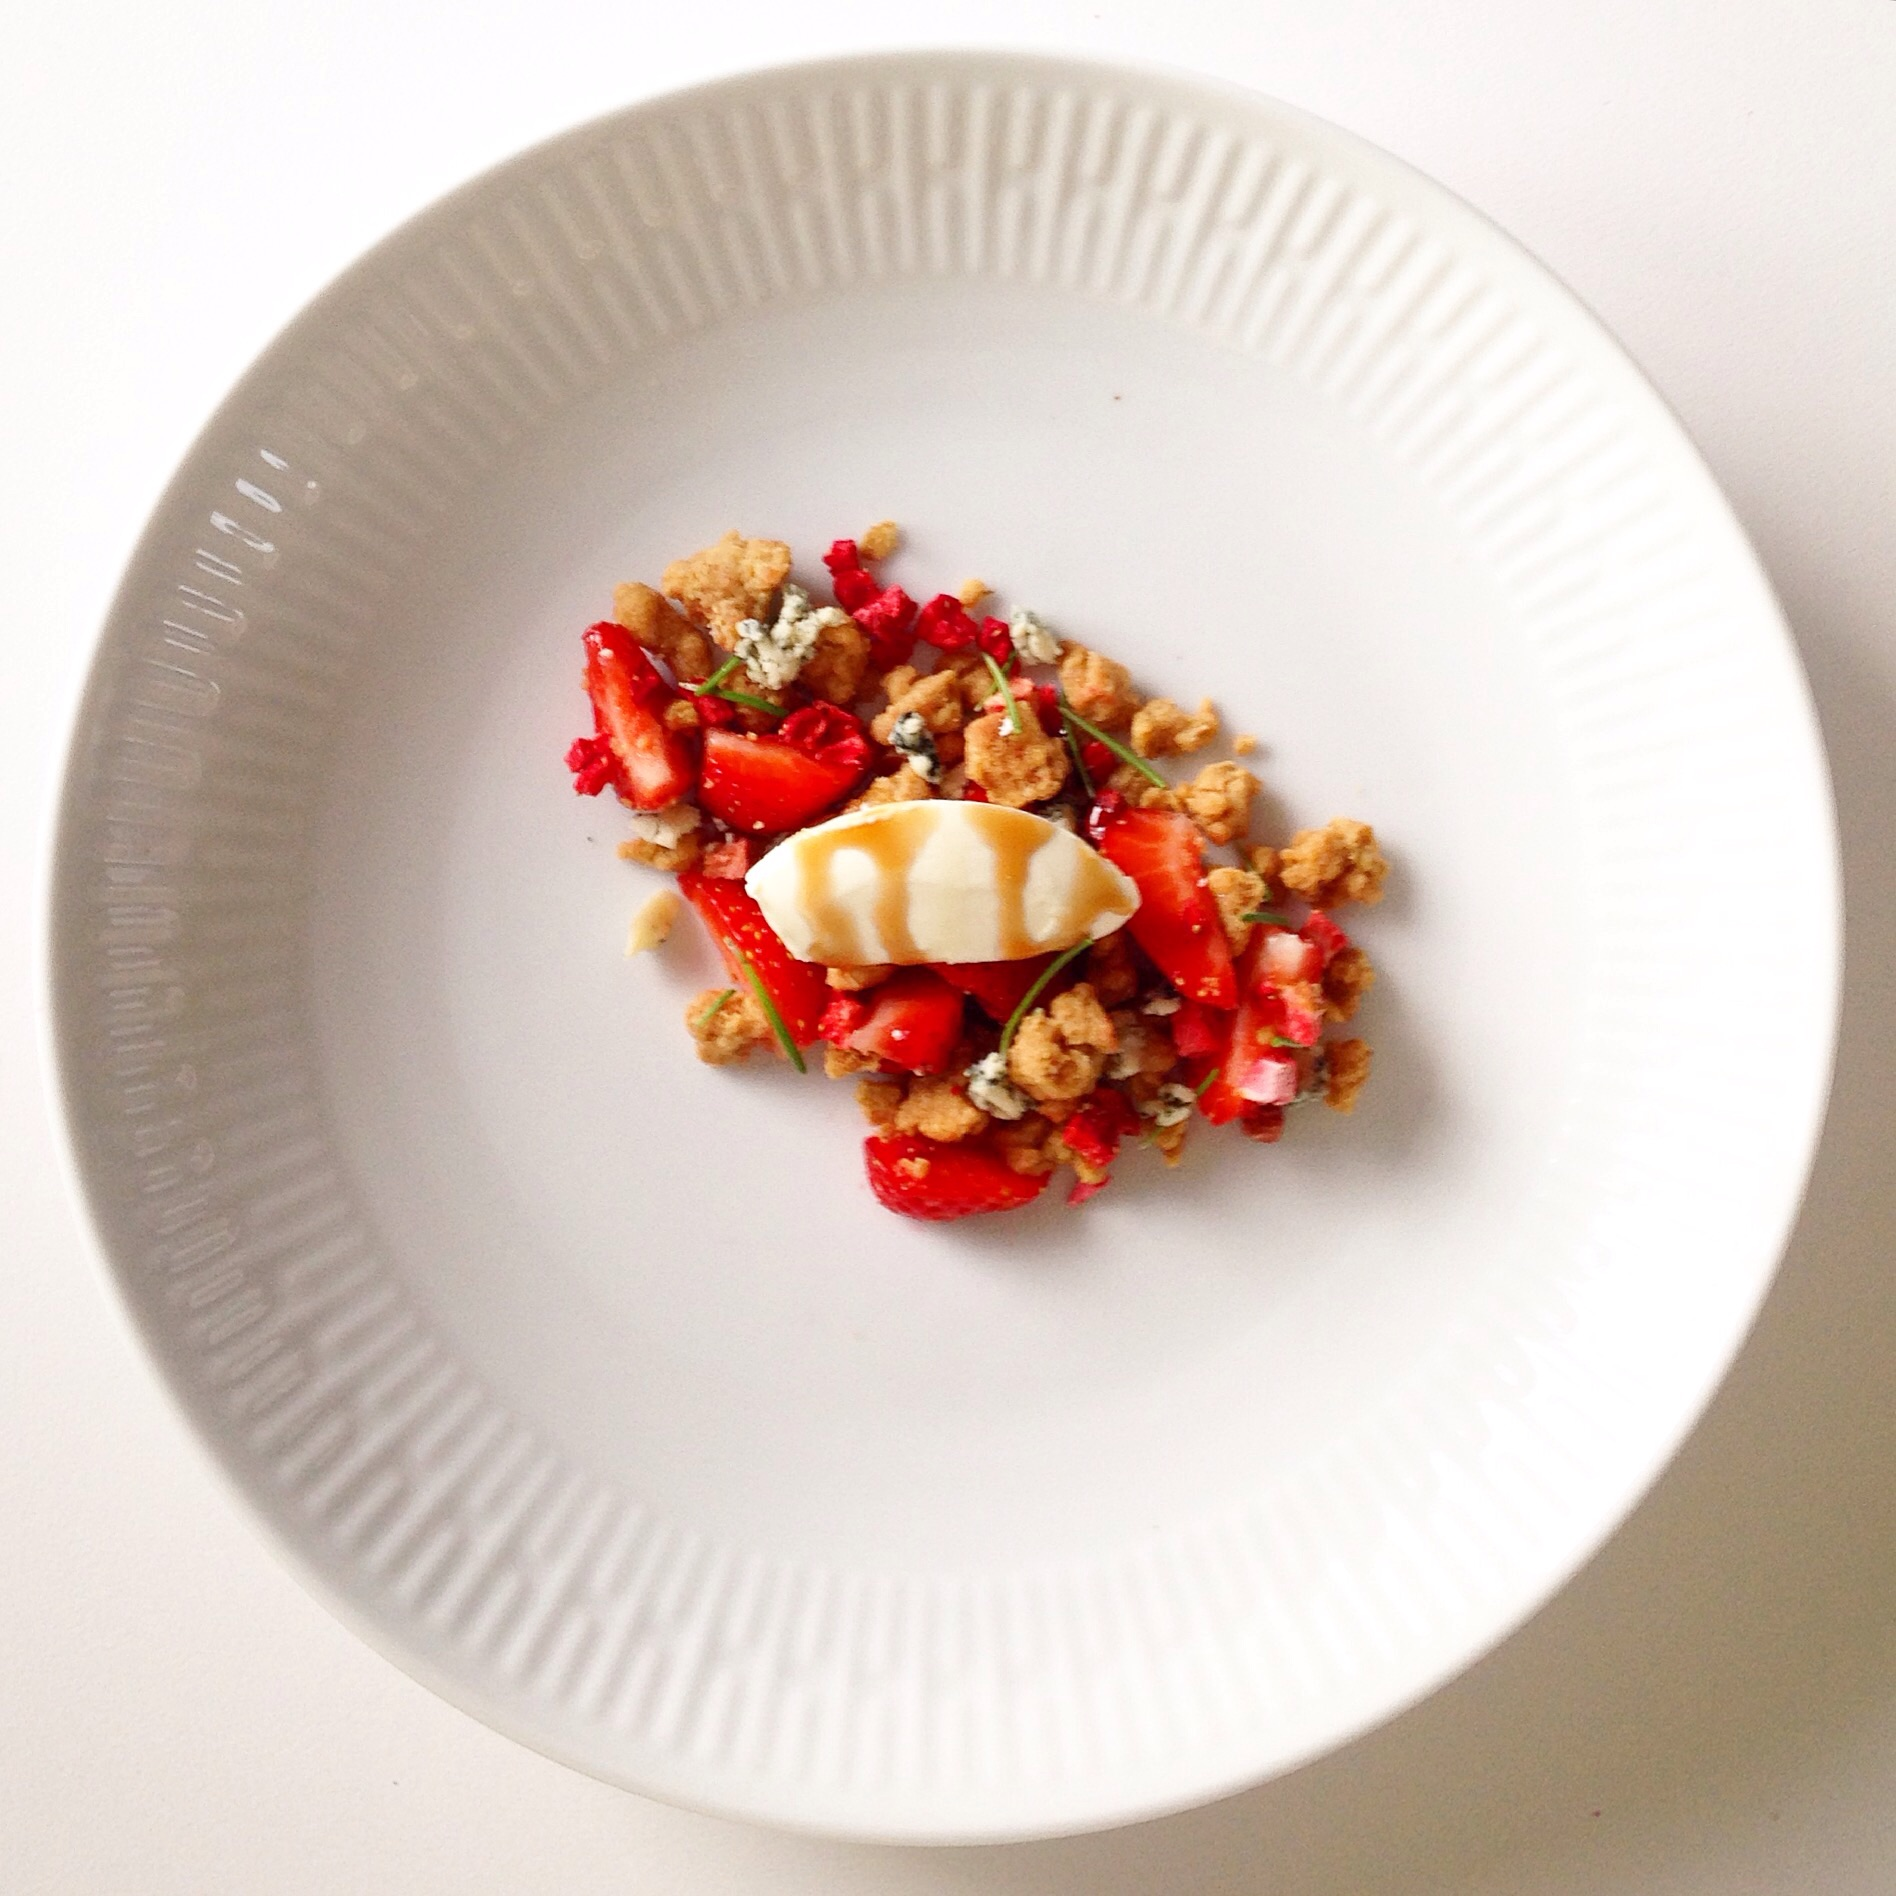 Strawberries with oat crumble, blue cheese and rosemary